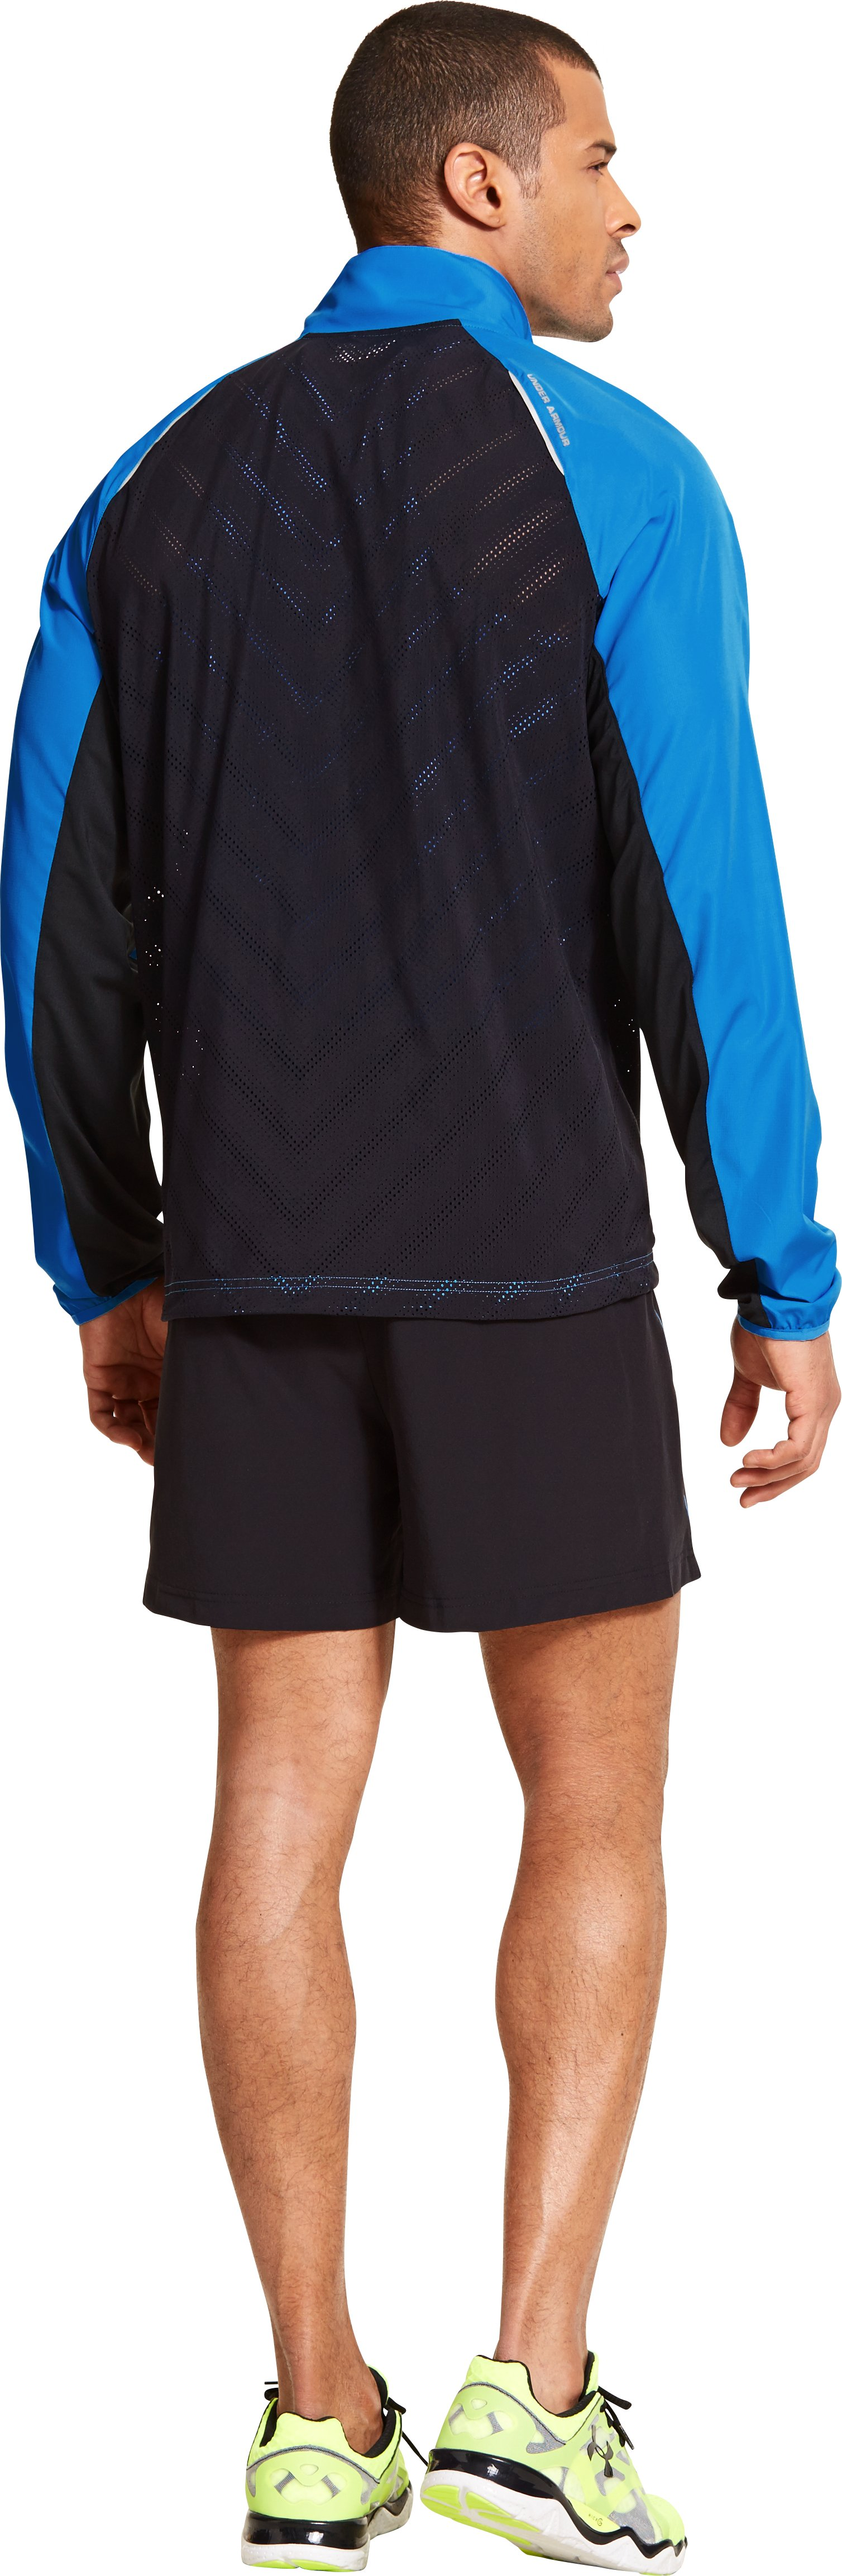 Men's ArmourVent™ Run Jacket, ELECTRIC BLUE, Back